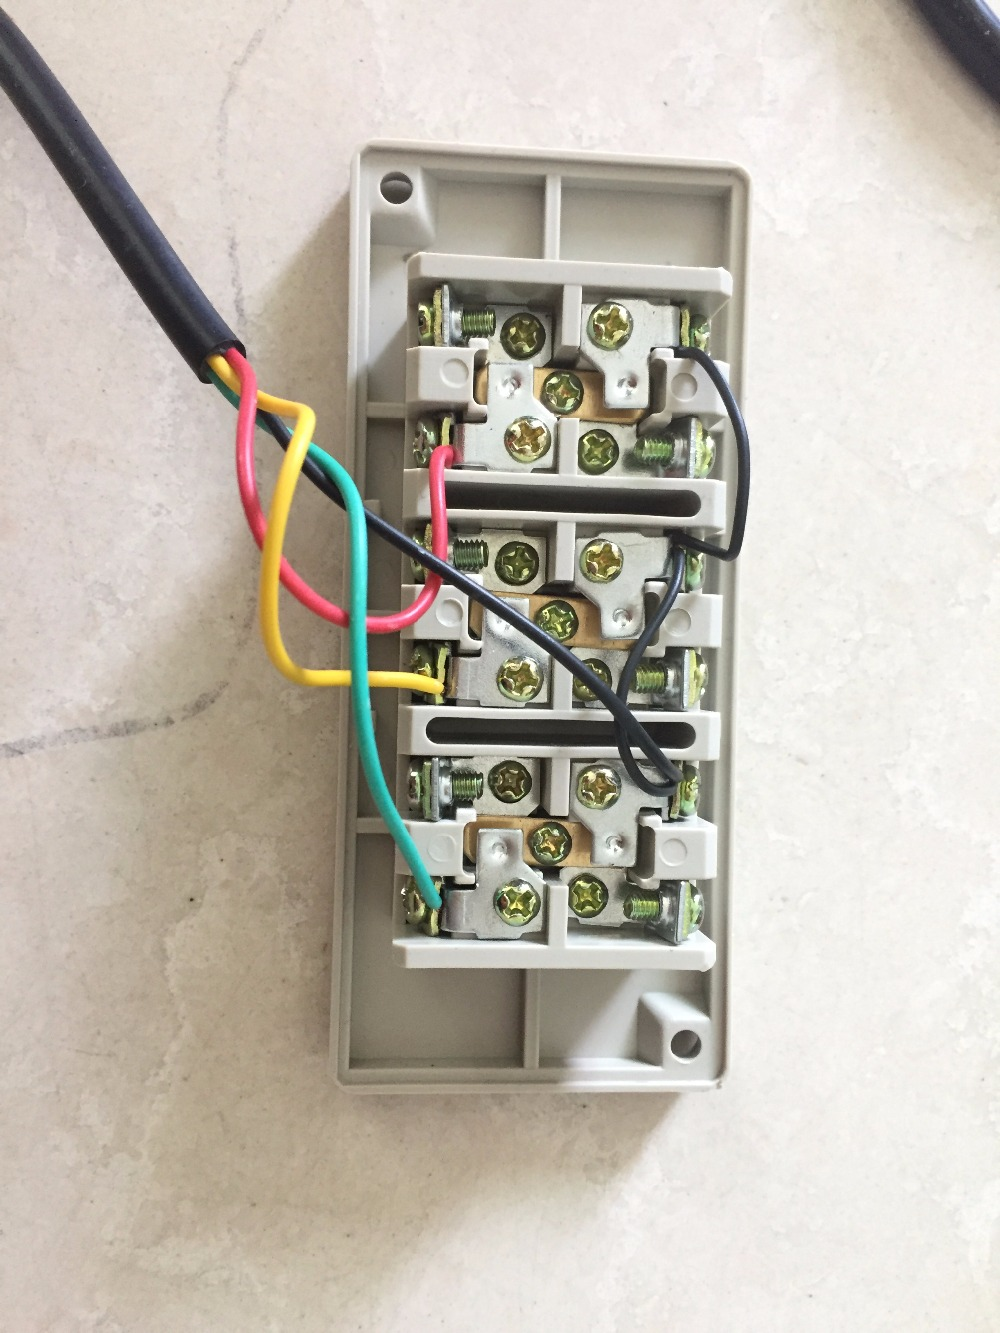 connection of push button